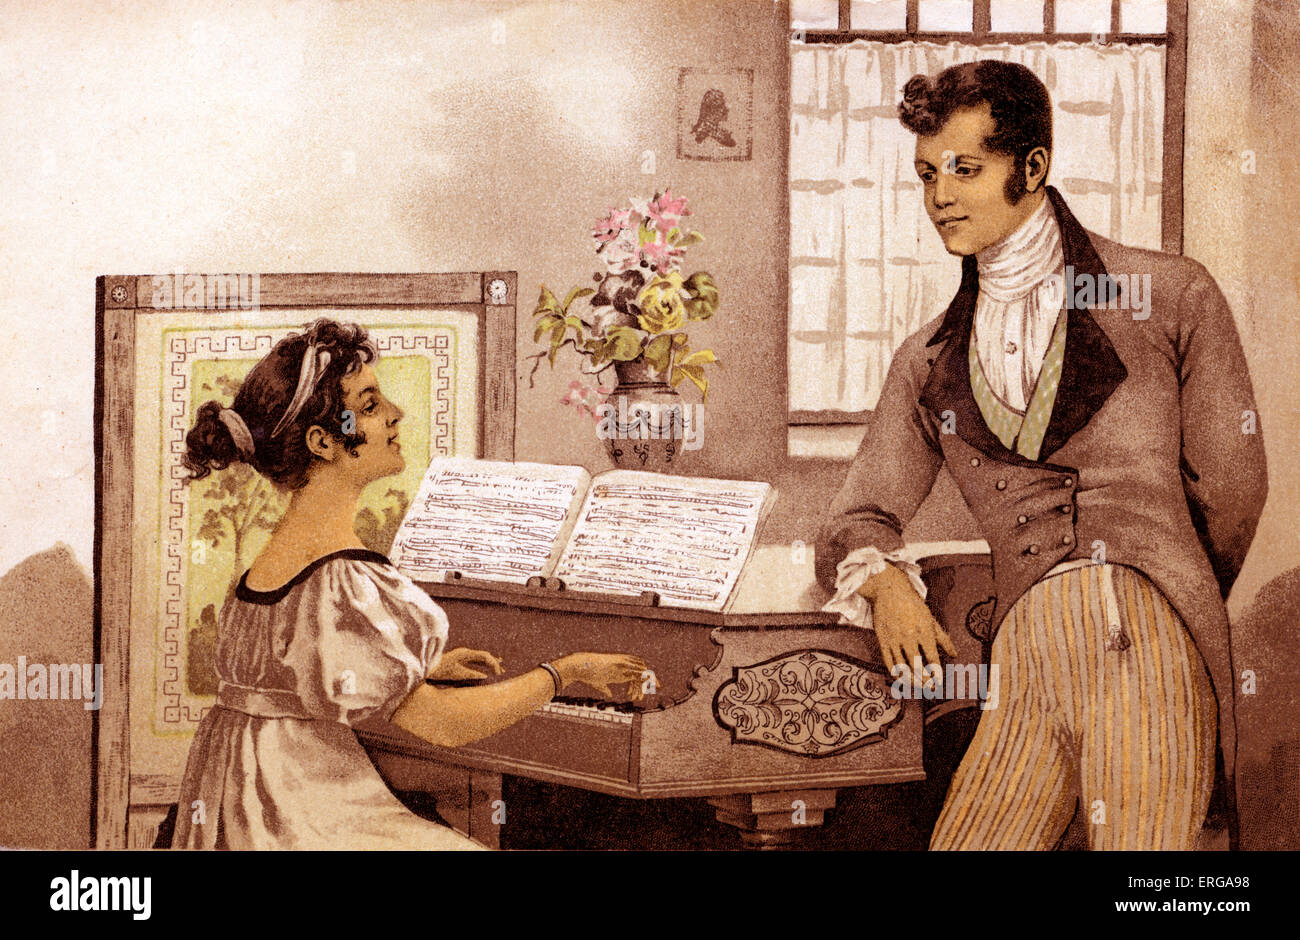 Regency couple performing duet (late 18th/early 19th century). - Stock Image